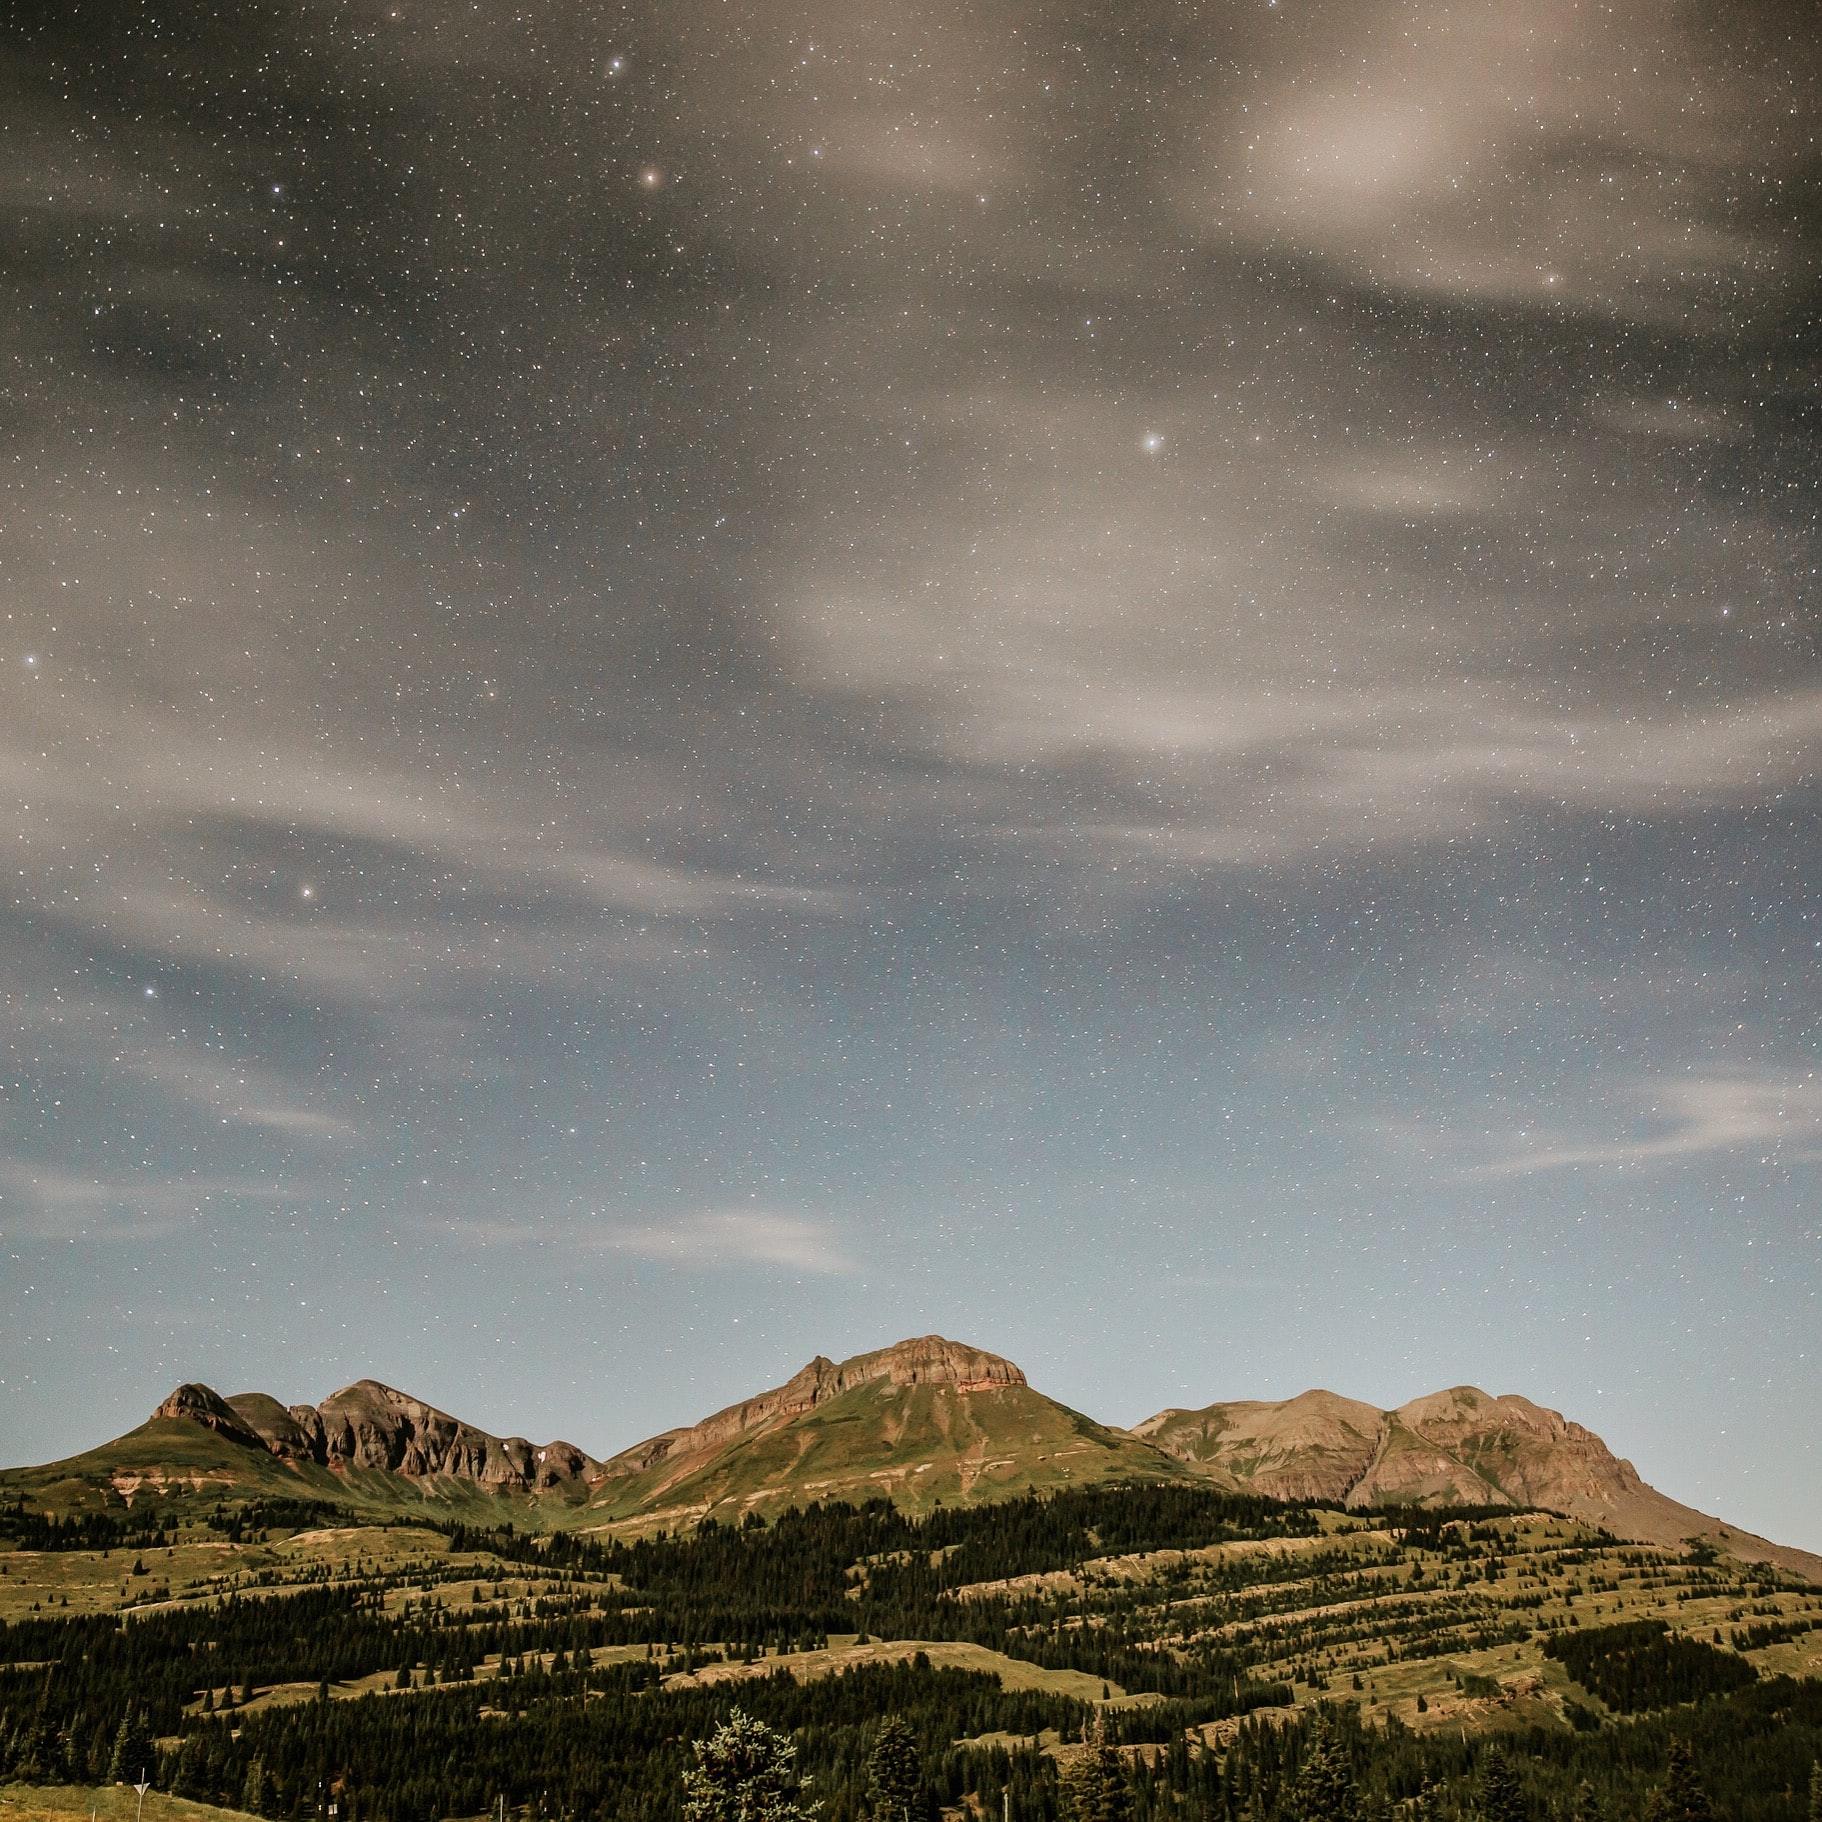 Wooded plains and low mountains below a starry sky in the evening